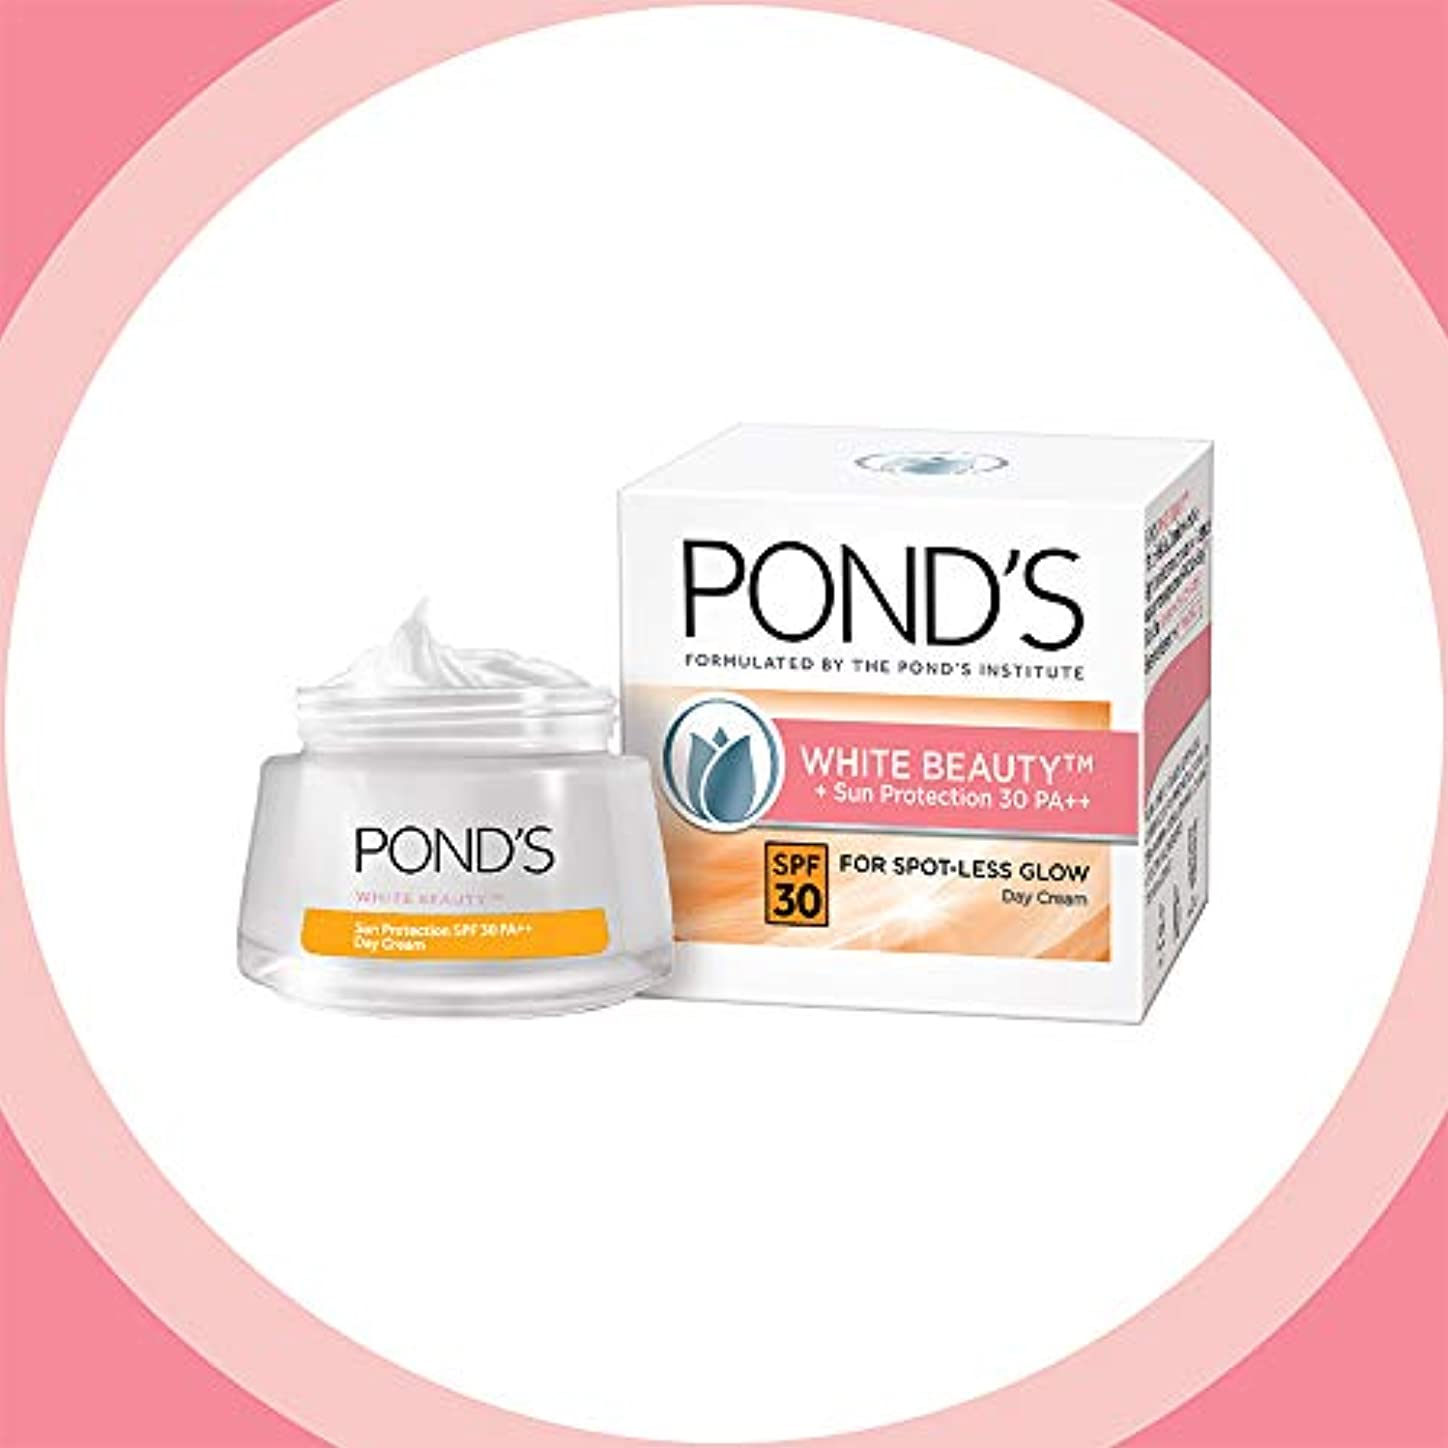 POND'S White Beauty Sun Protection SPF 30 Day Cream, 50 g